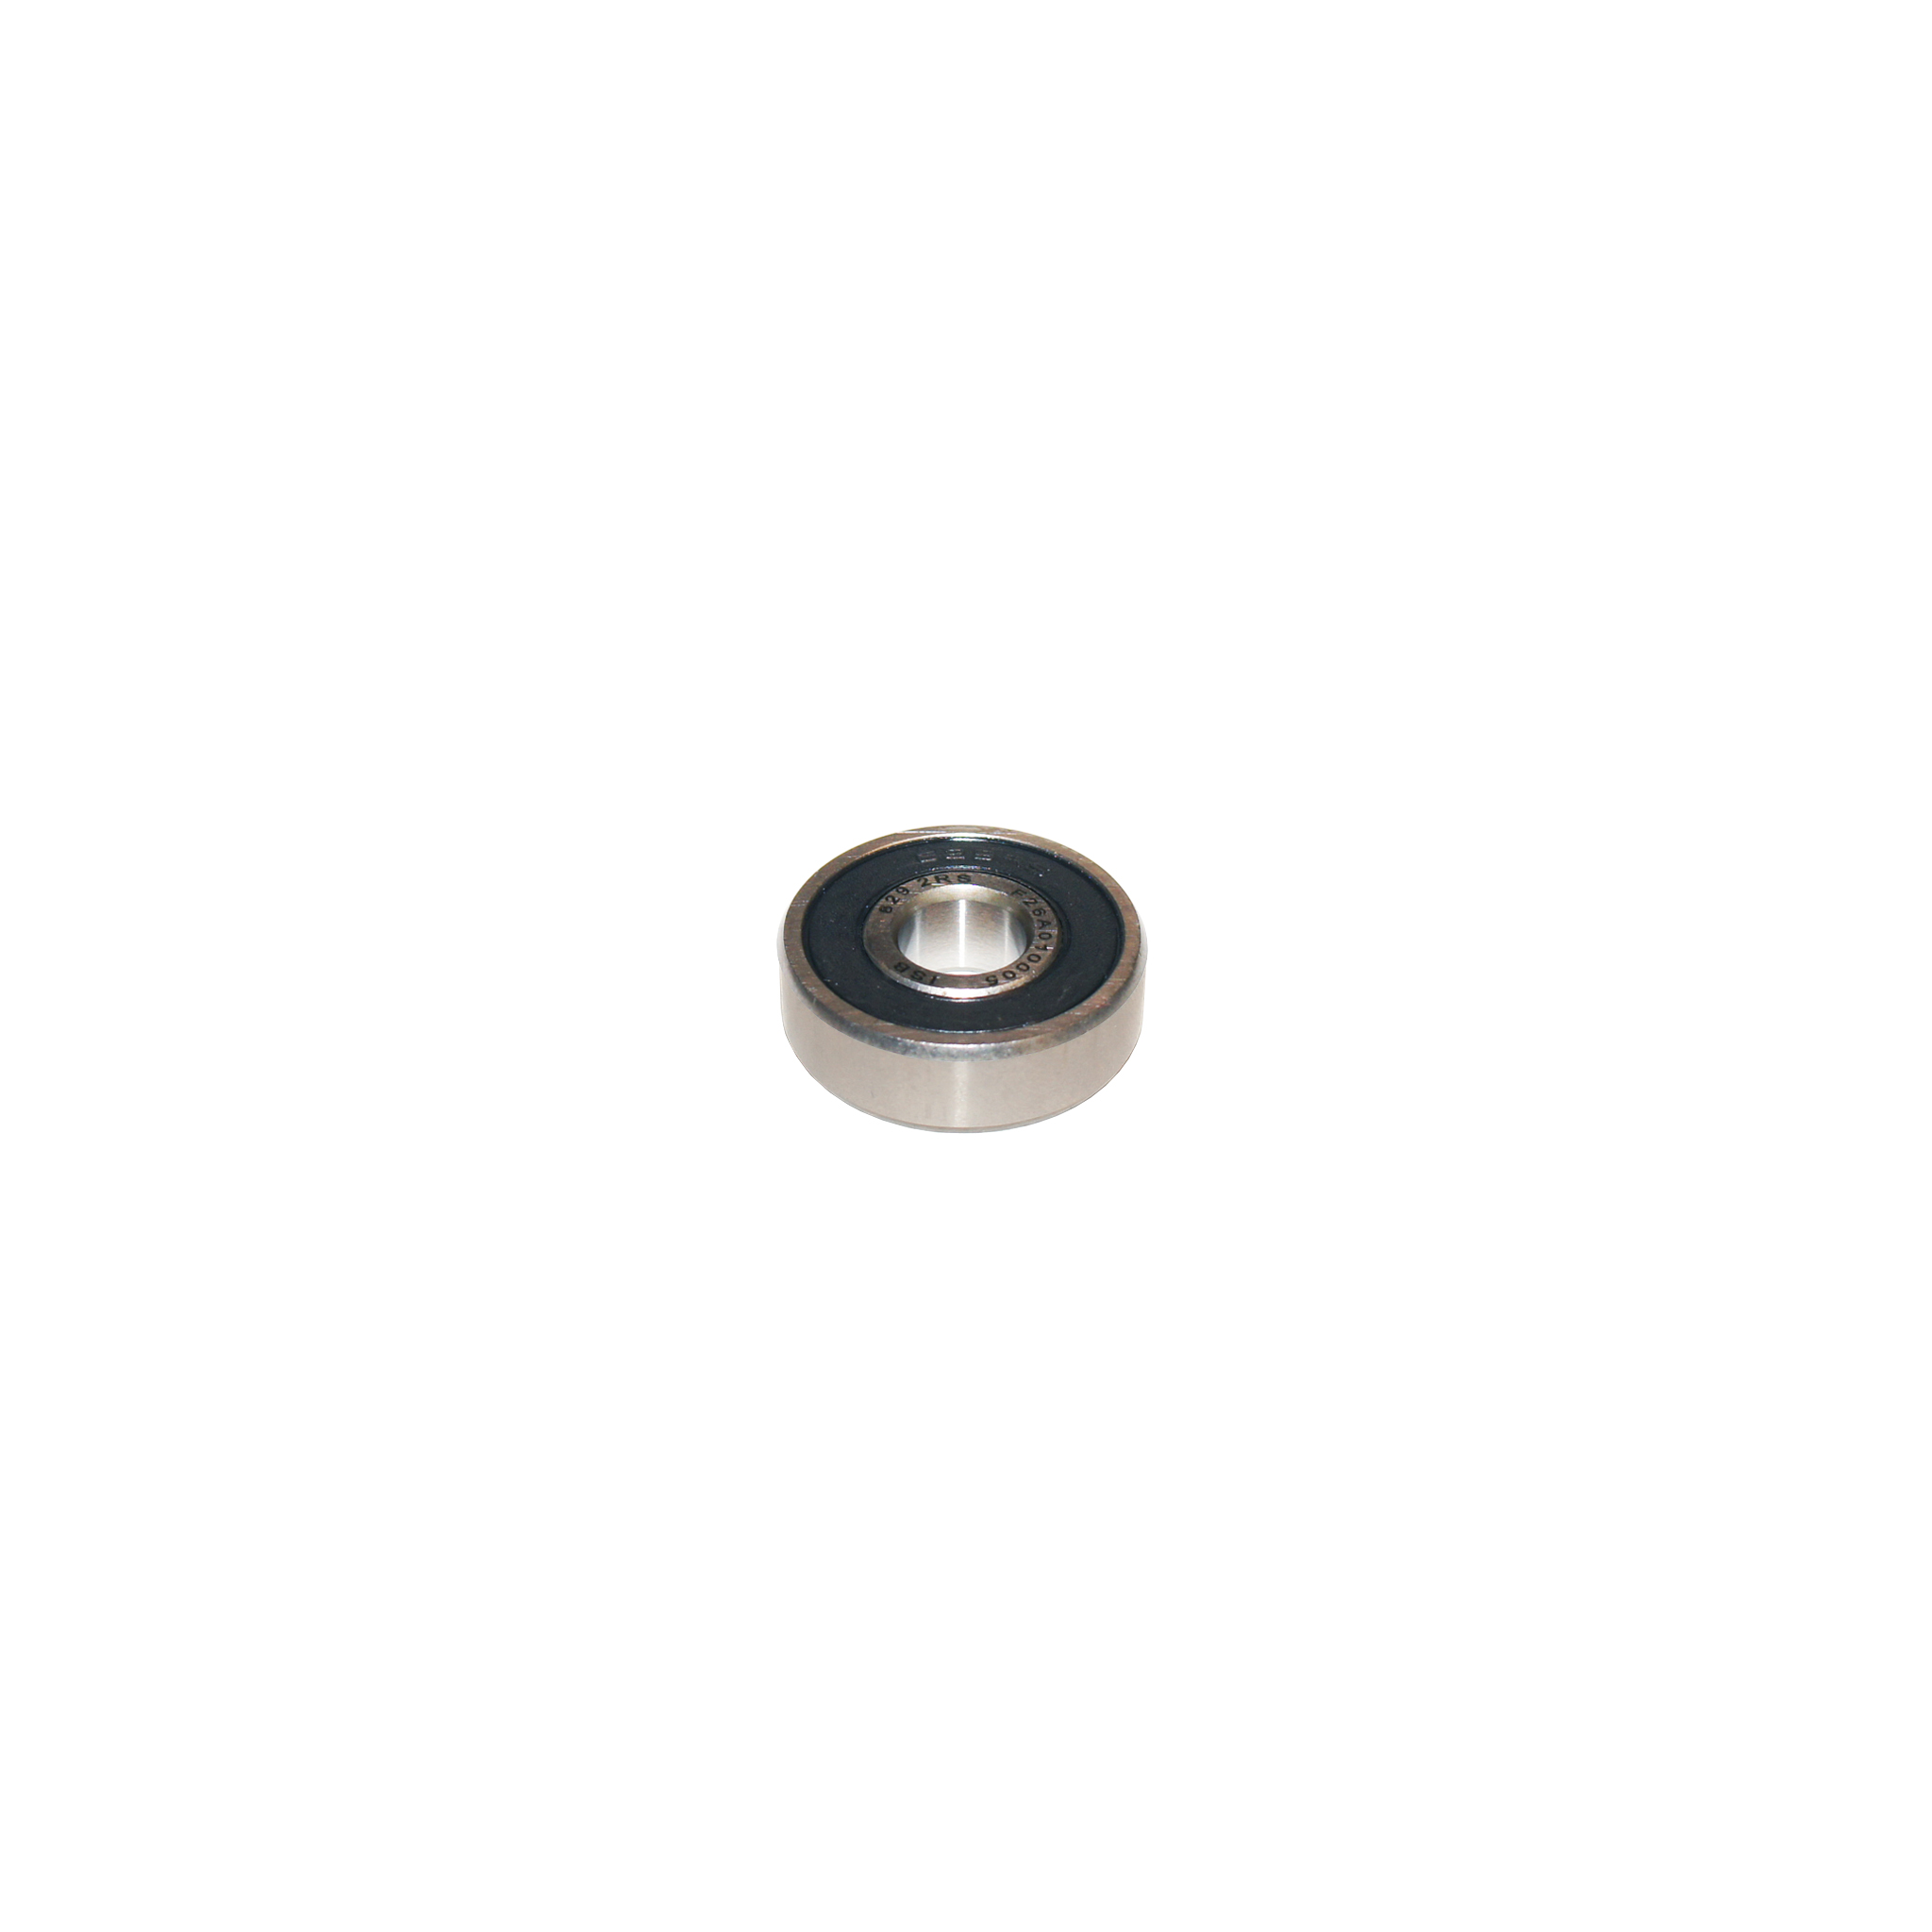 Ball bearing 629 for guide arm